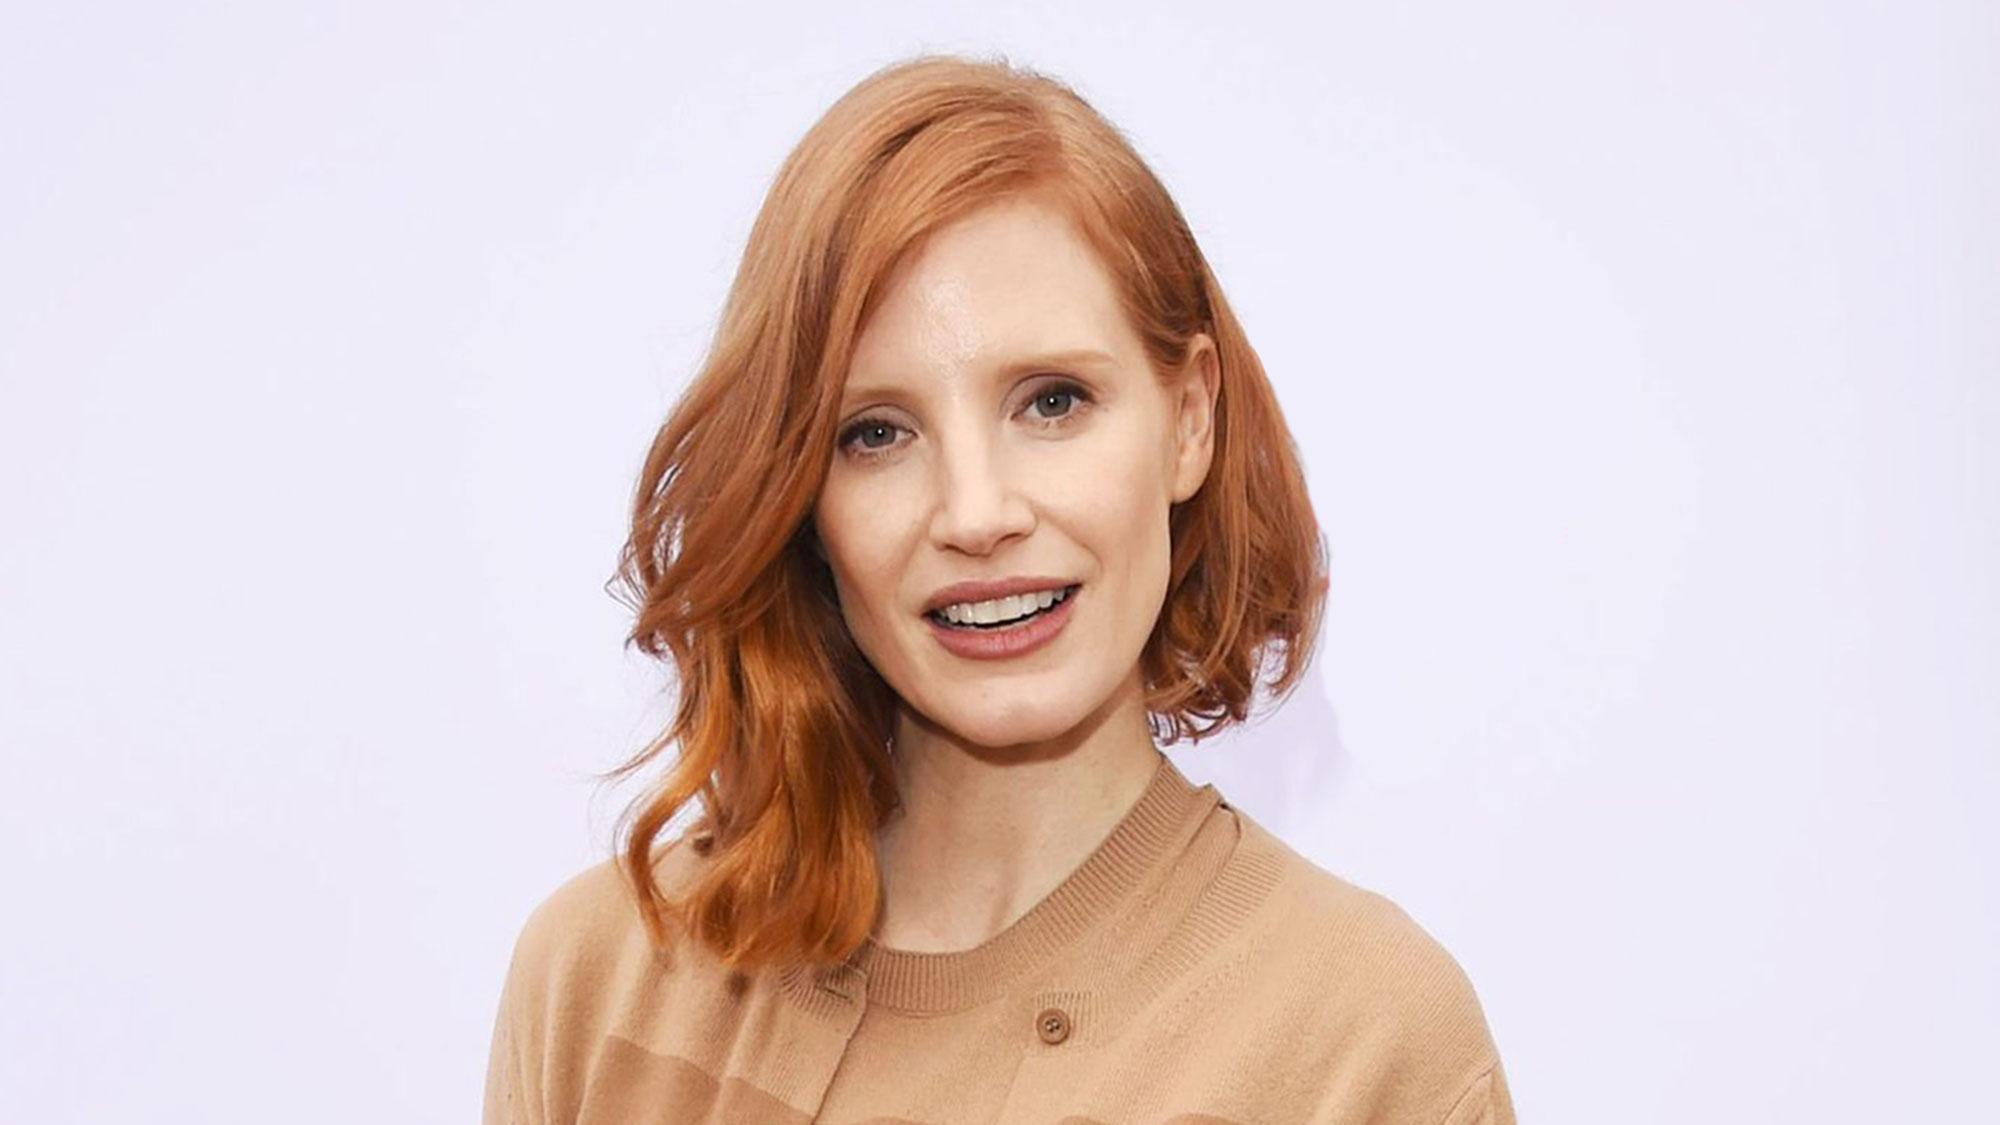 best hairstyles for oval faces 2019 according to hair experts